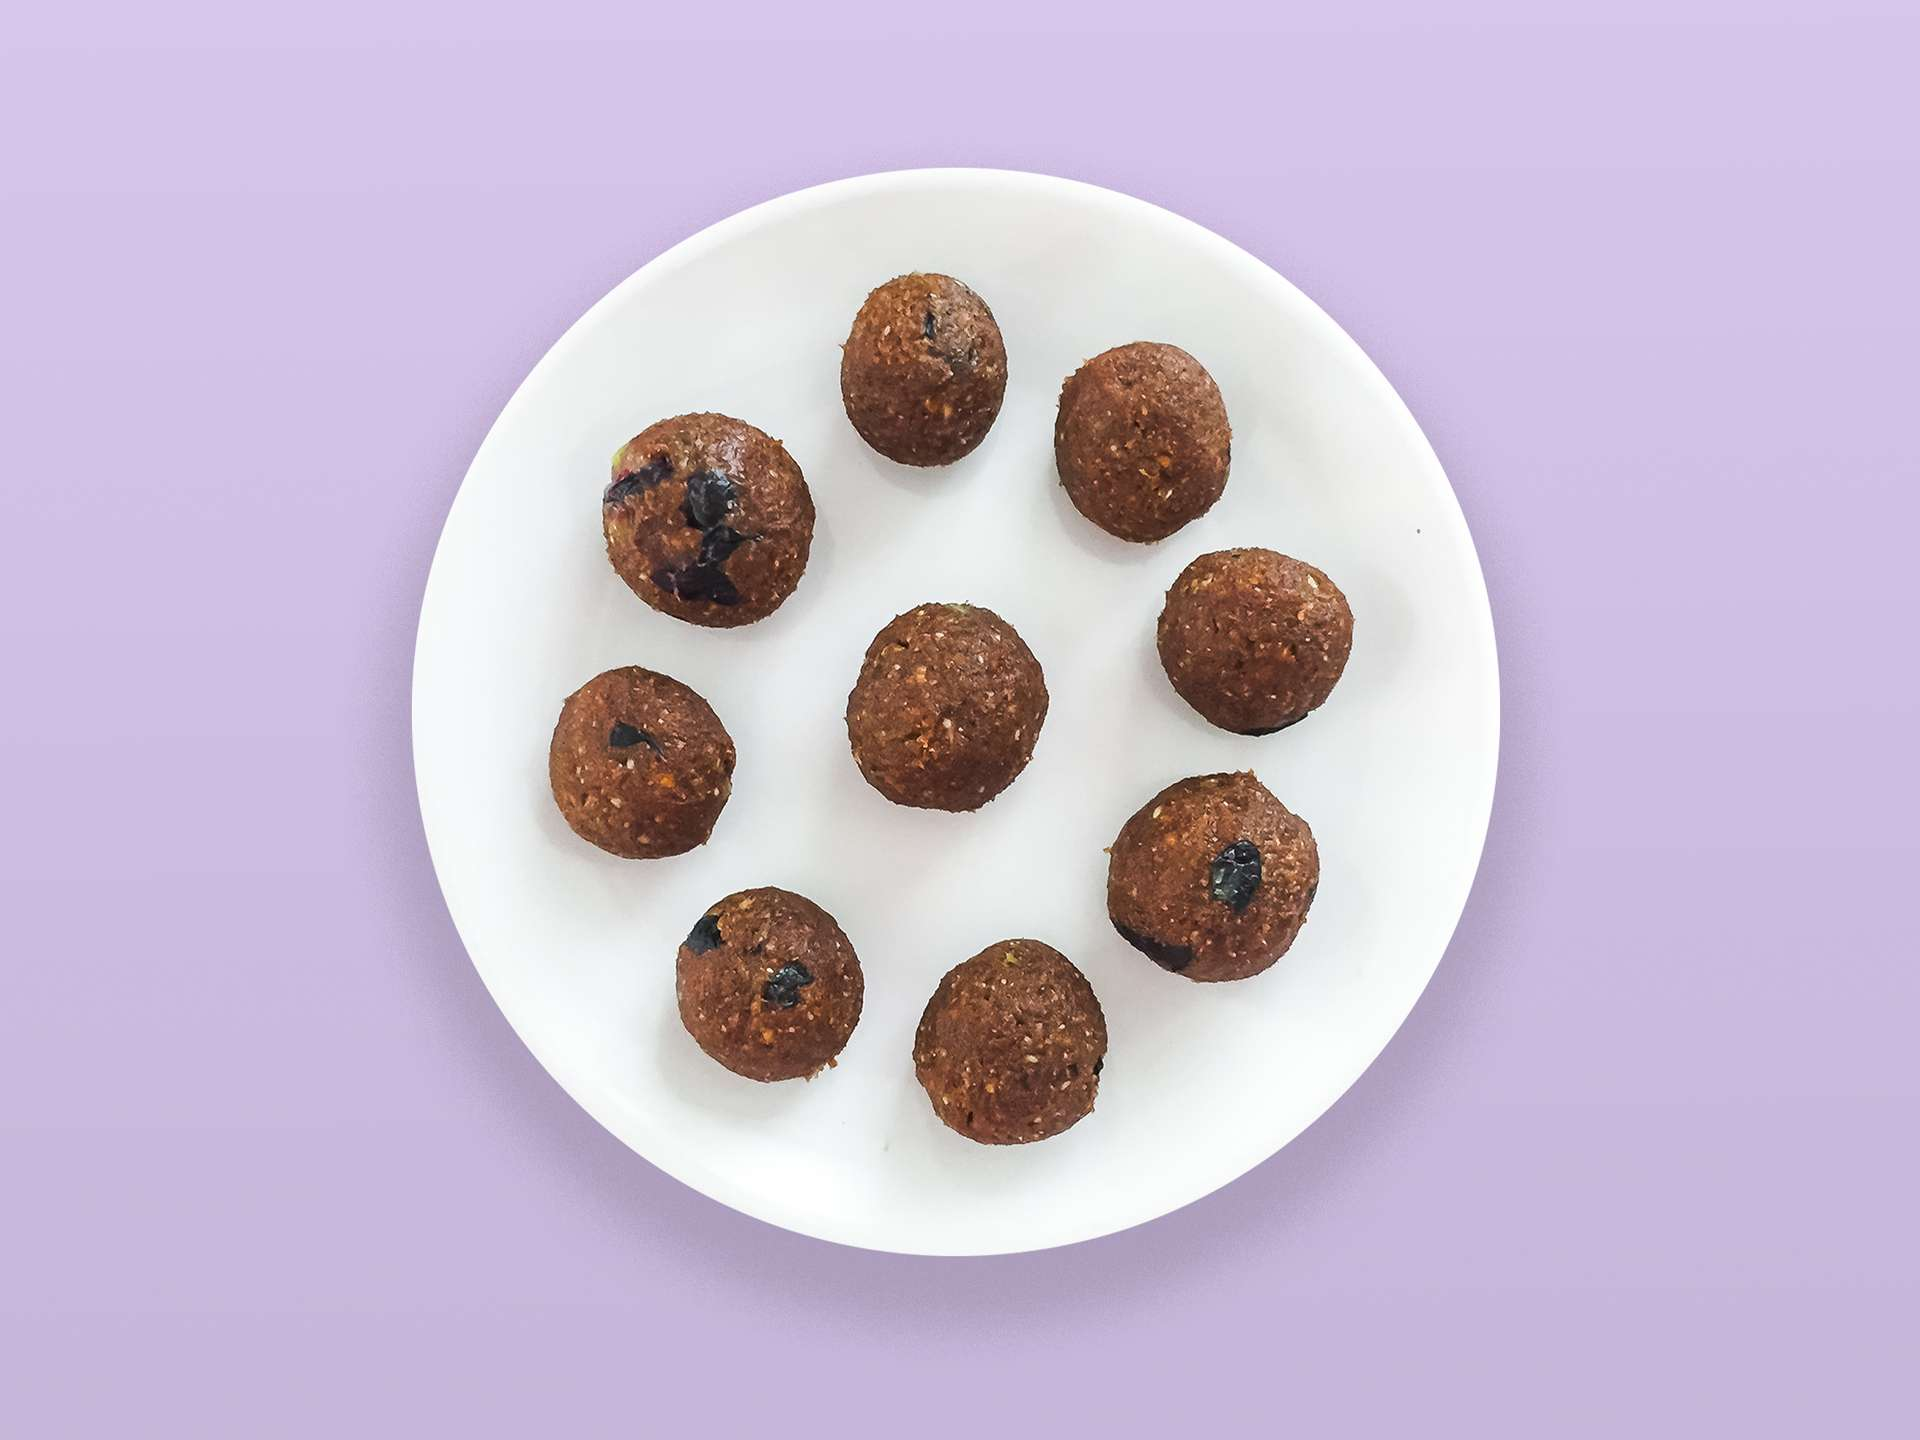 Step 3.1 of Gluten Free Blueberry and Almond Truffles